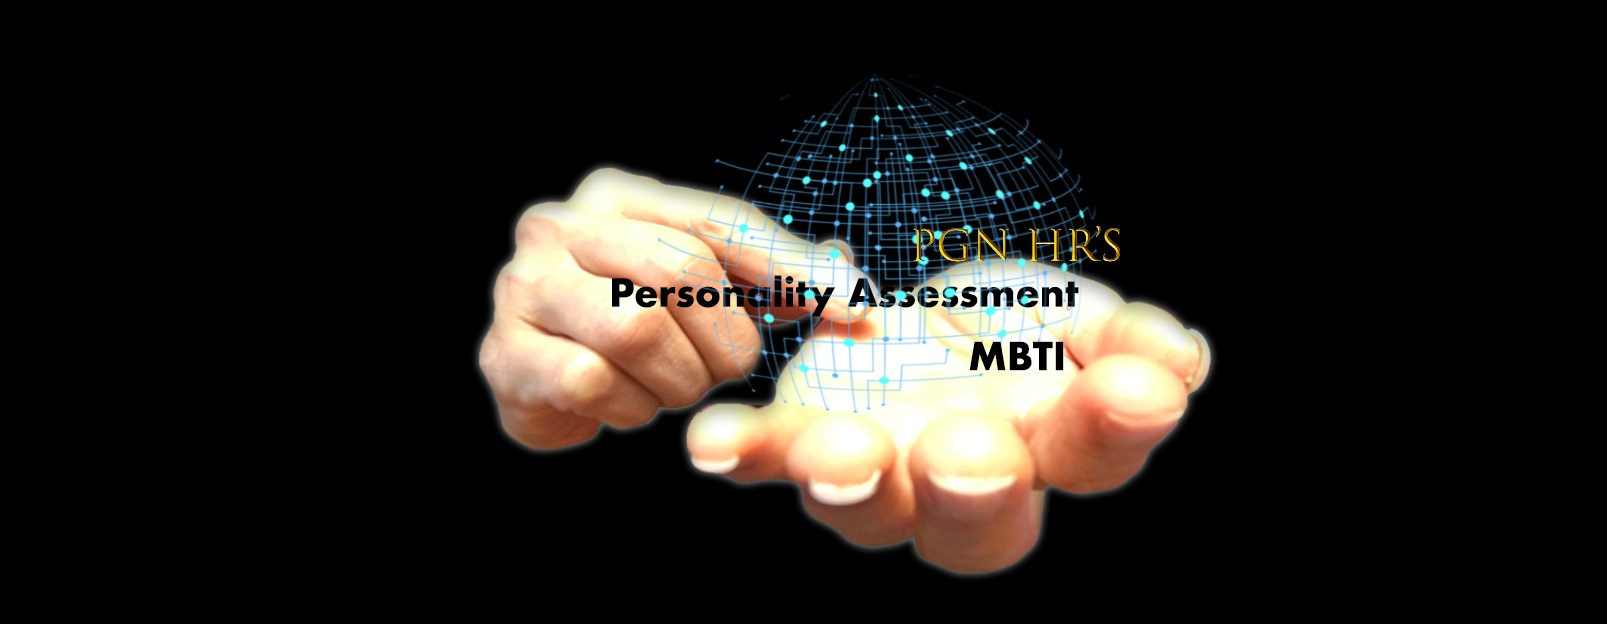 mbti personality assessment by pgn hr